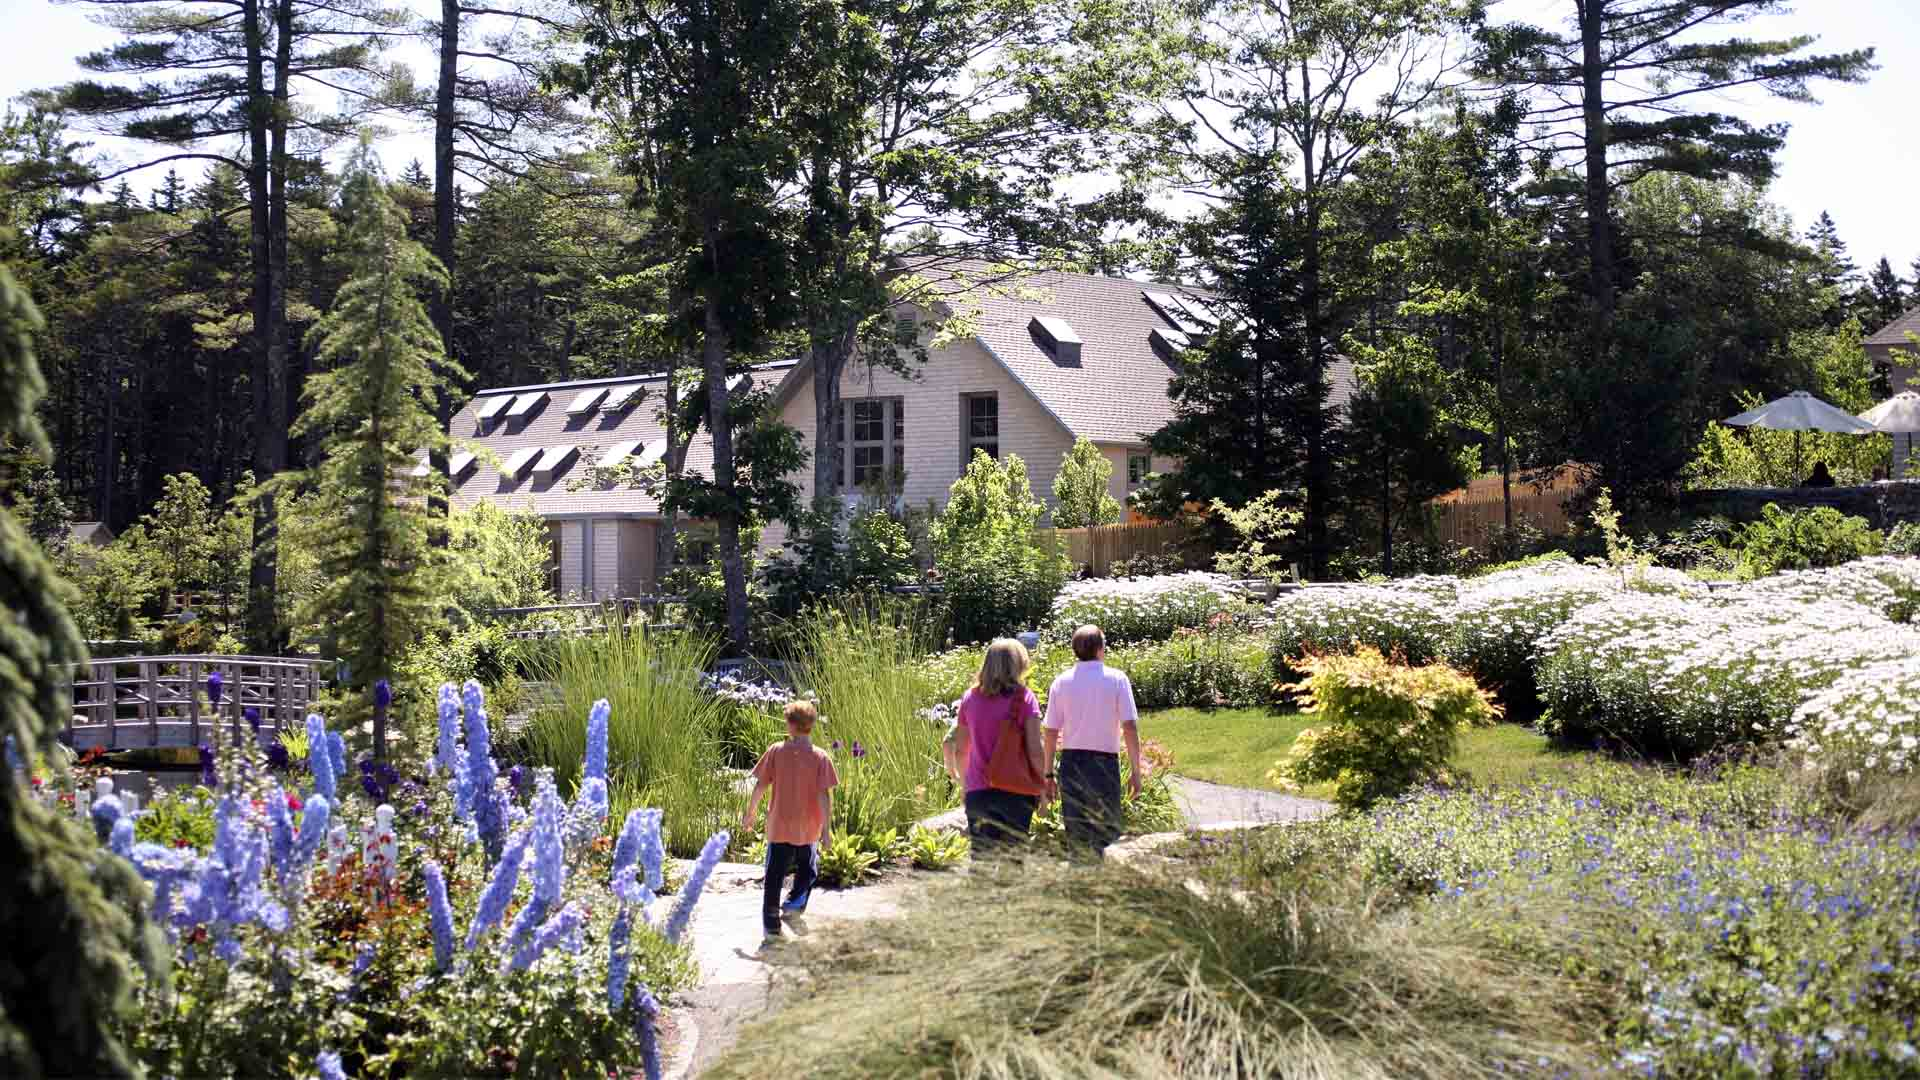 Architecture and design of Coastal Maine Botanical Gardens - Boothbay, Maine